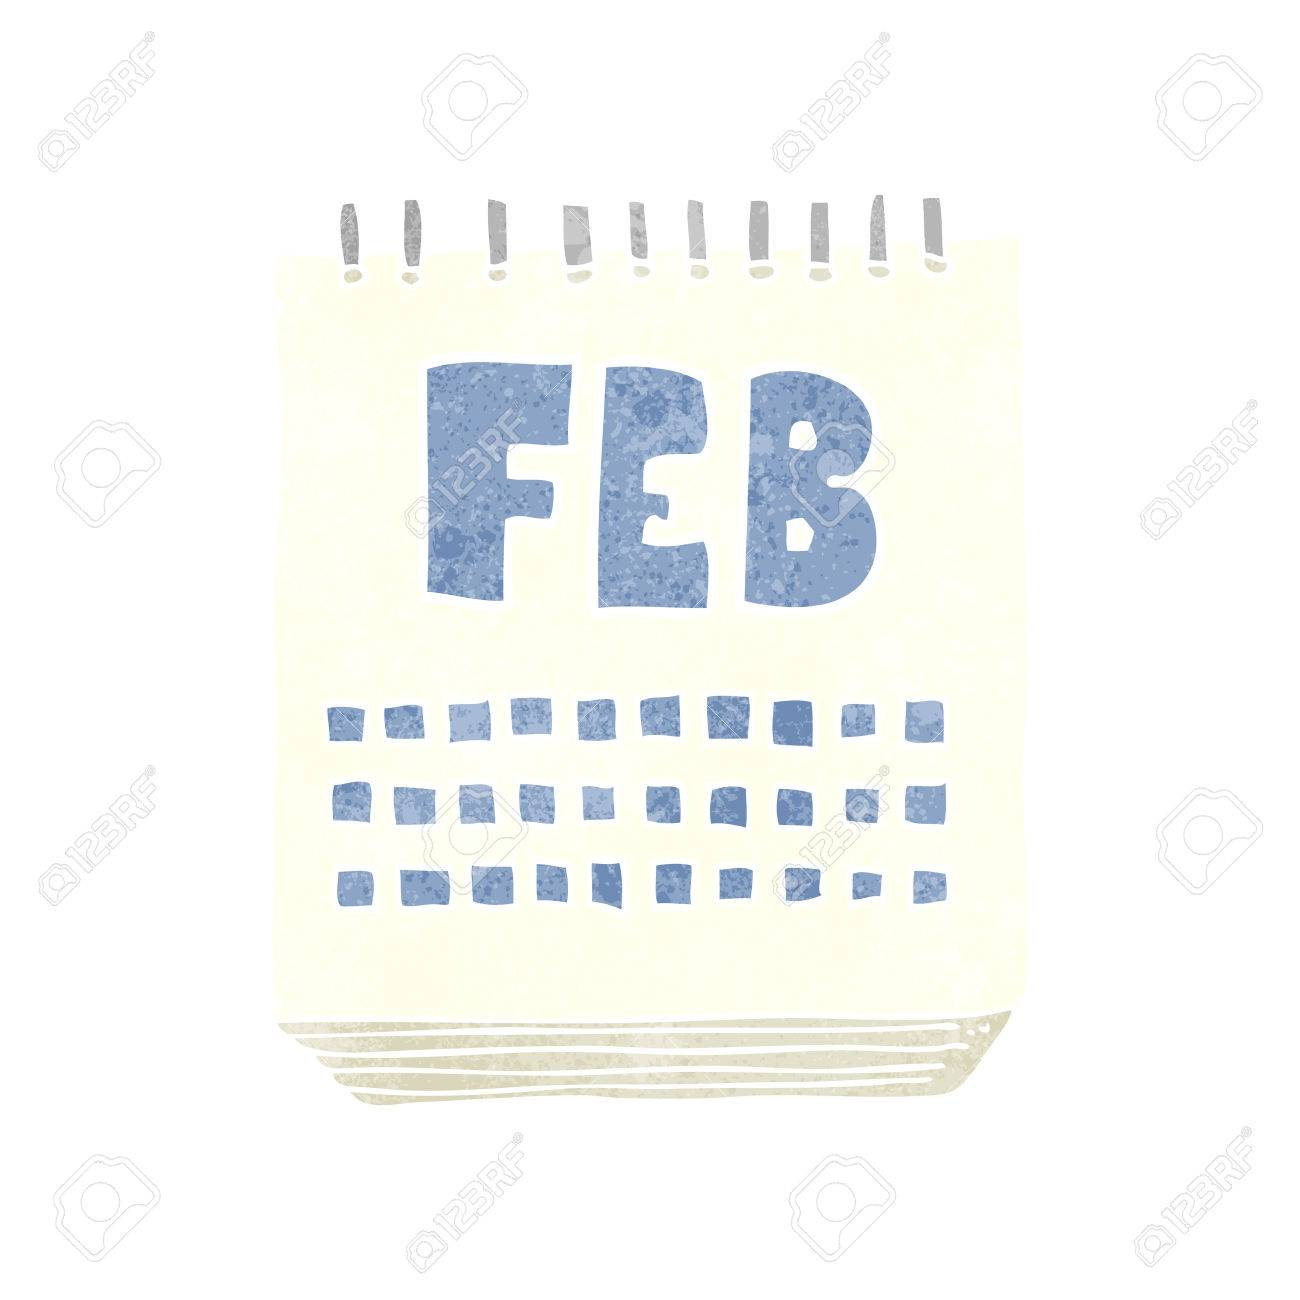 https://previews.123rf.com/images/lineartestpilot/lineartestpilot1603/lineartestpilot160321031/53716937-freehand-retro-cartoon-calendar-showing-month-of-february.jpg